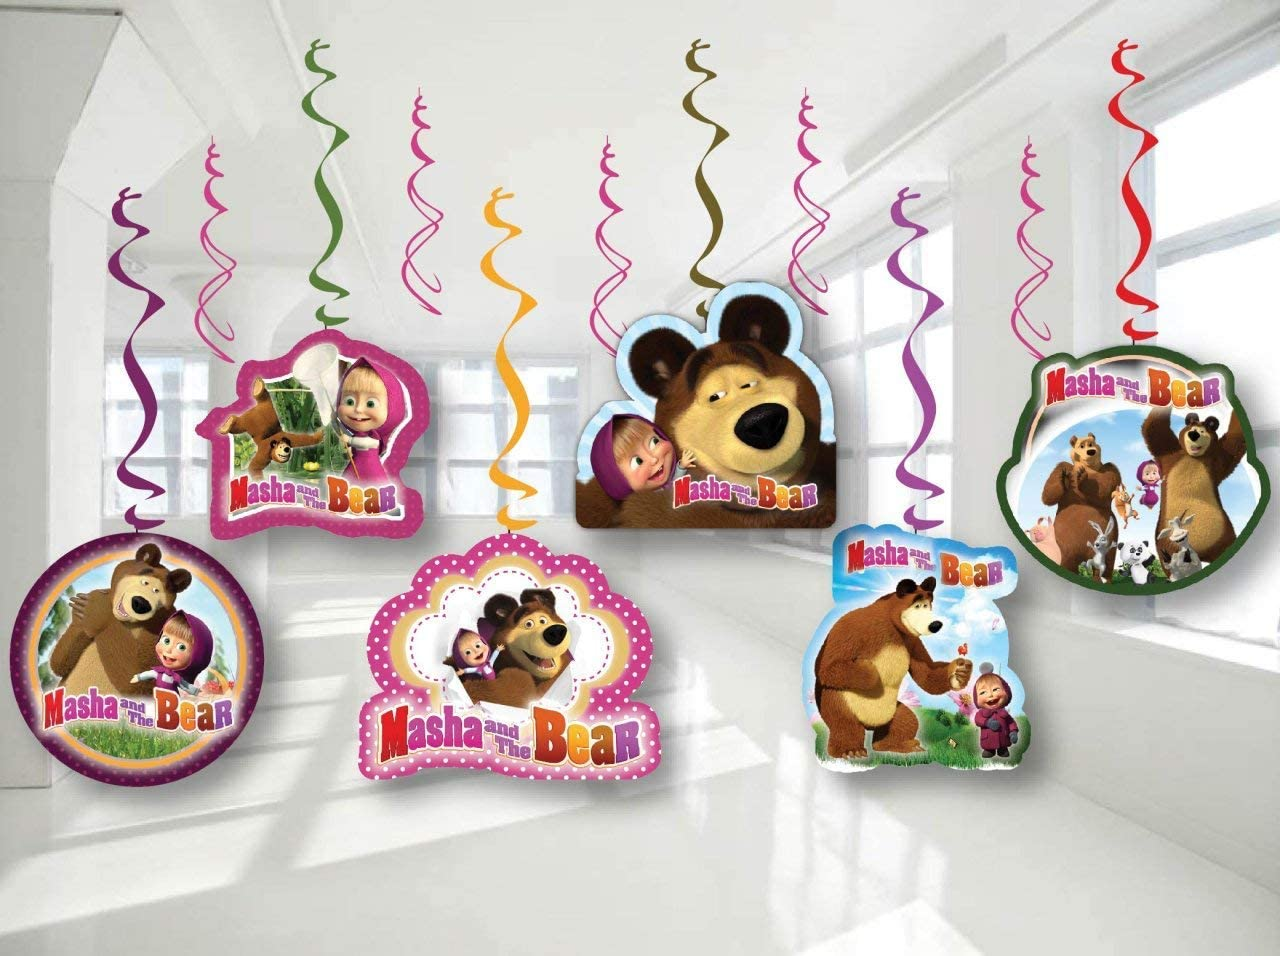 Masha and the bear Birthday Party Decor, Hanging Decoration Swirls, Package of 12 Assorted Set